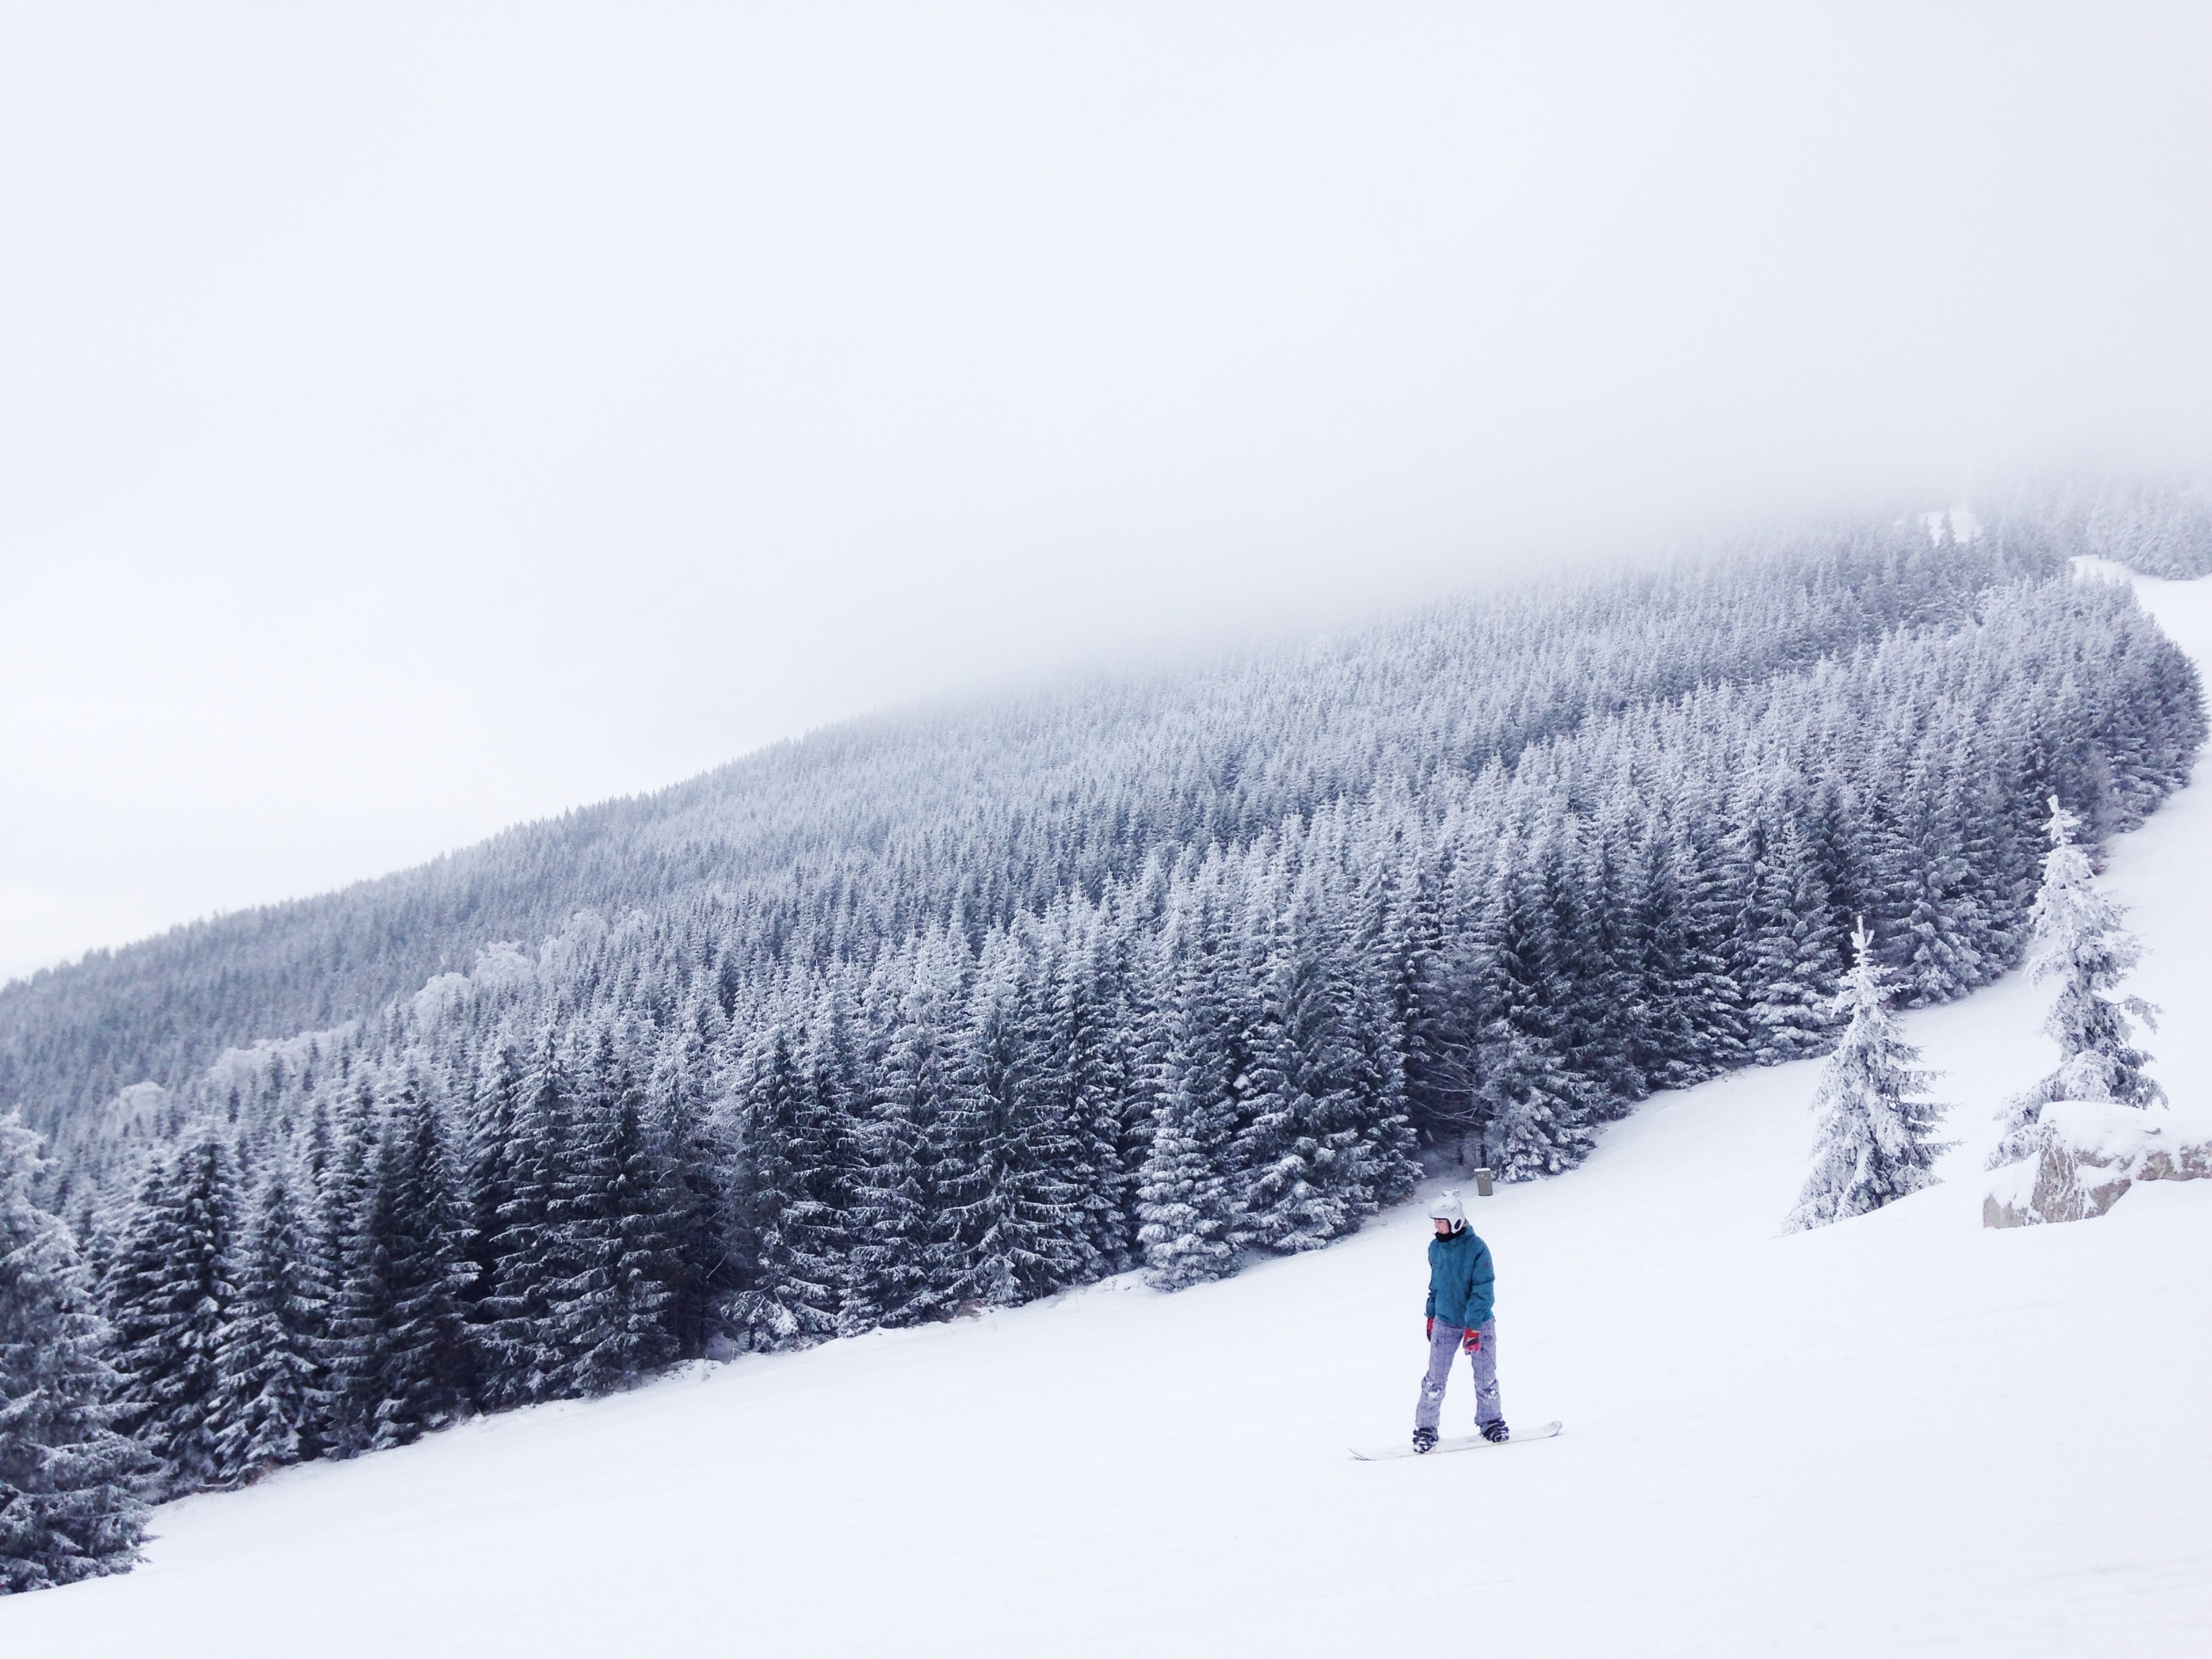 Snowboarding on a snowy slope alongside a thick patch of trees